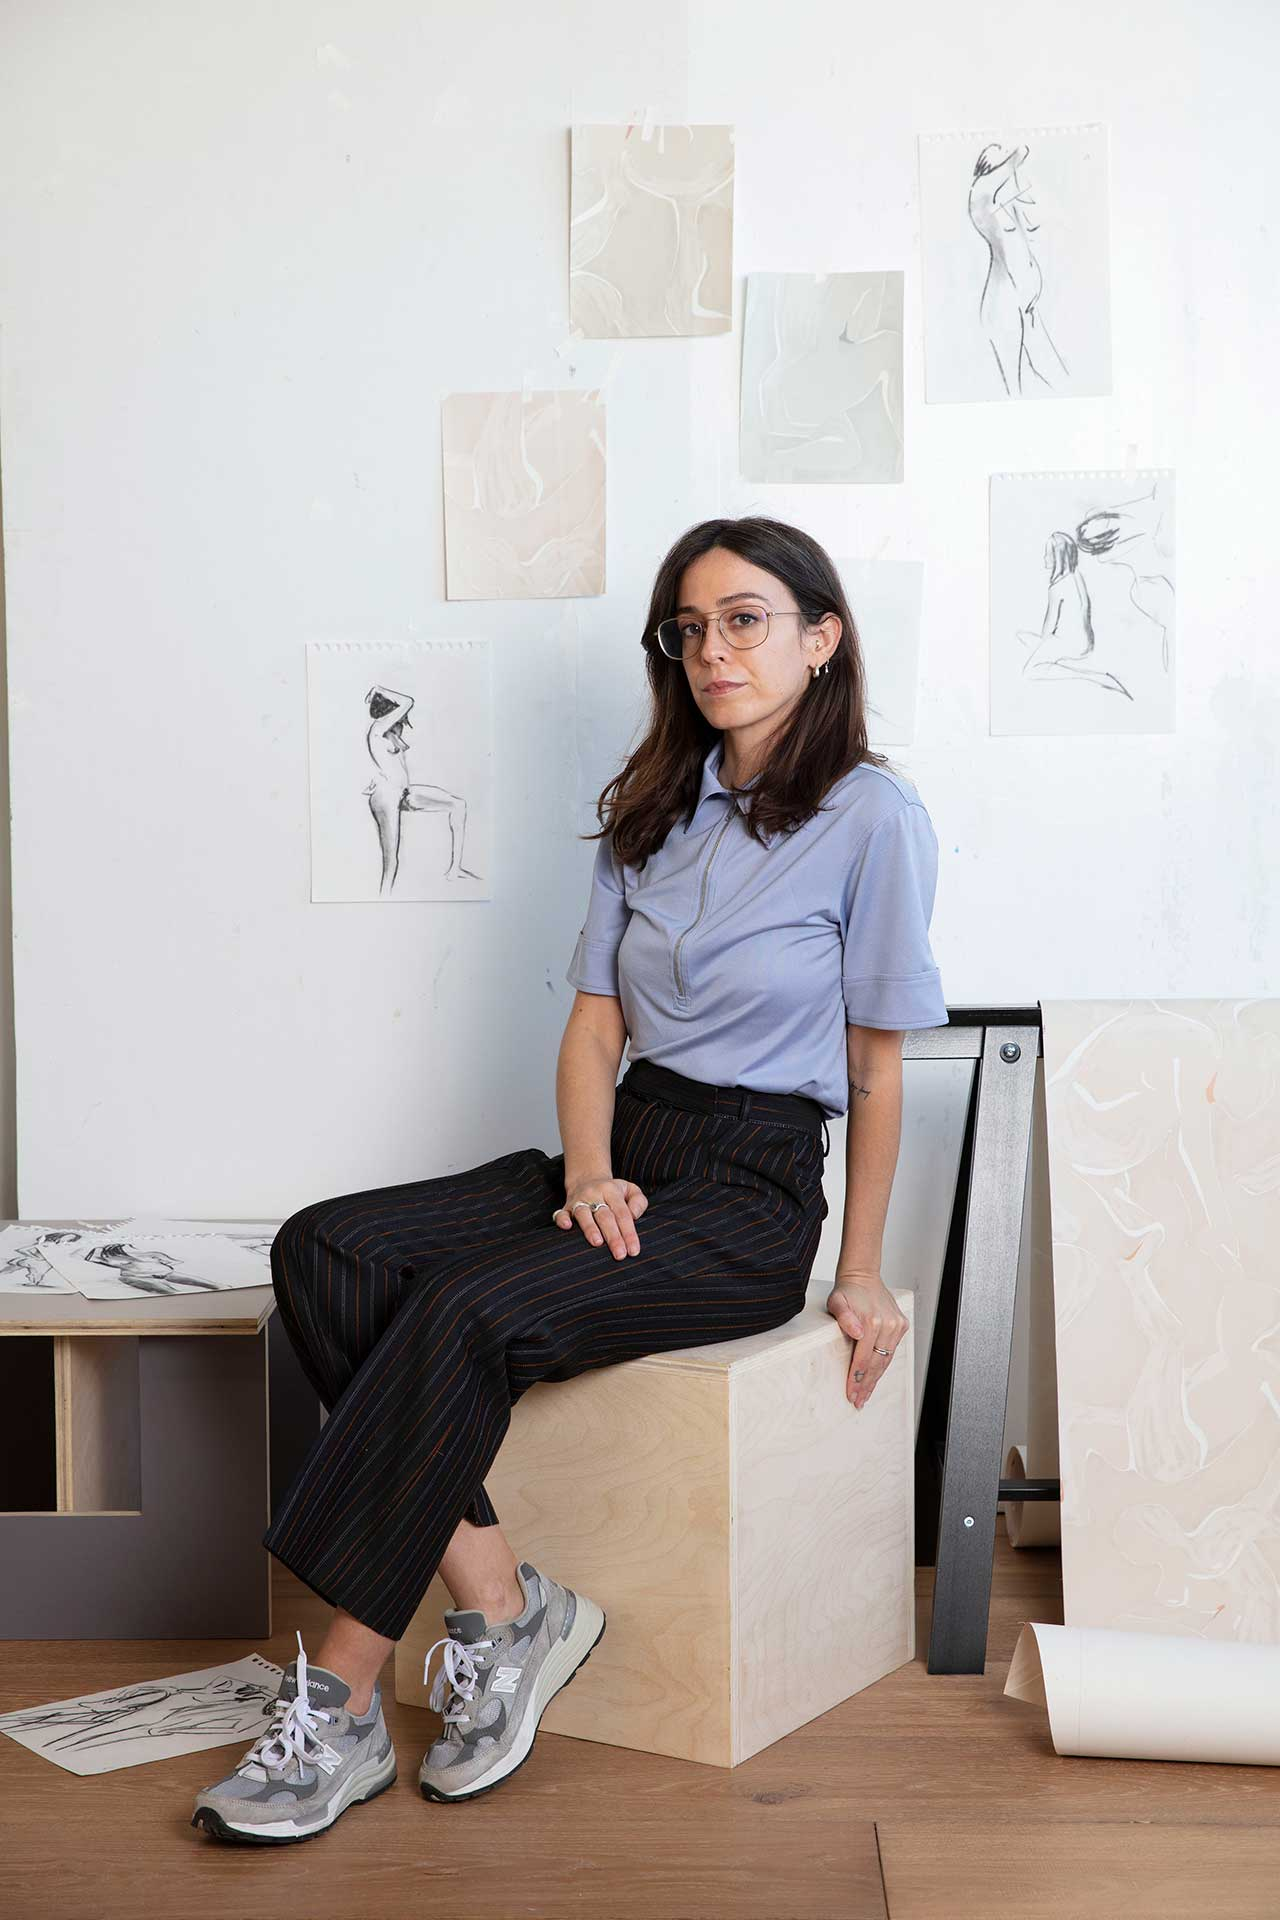 Person sitting on wood cube with sketches on wall behind them